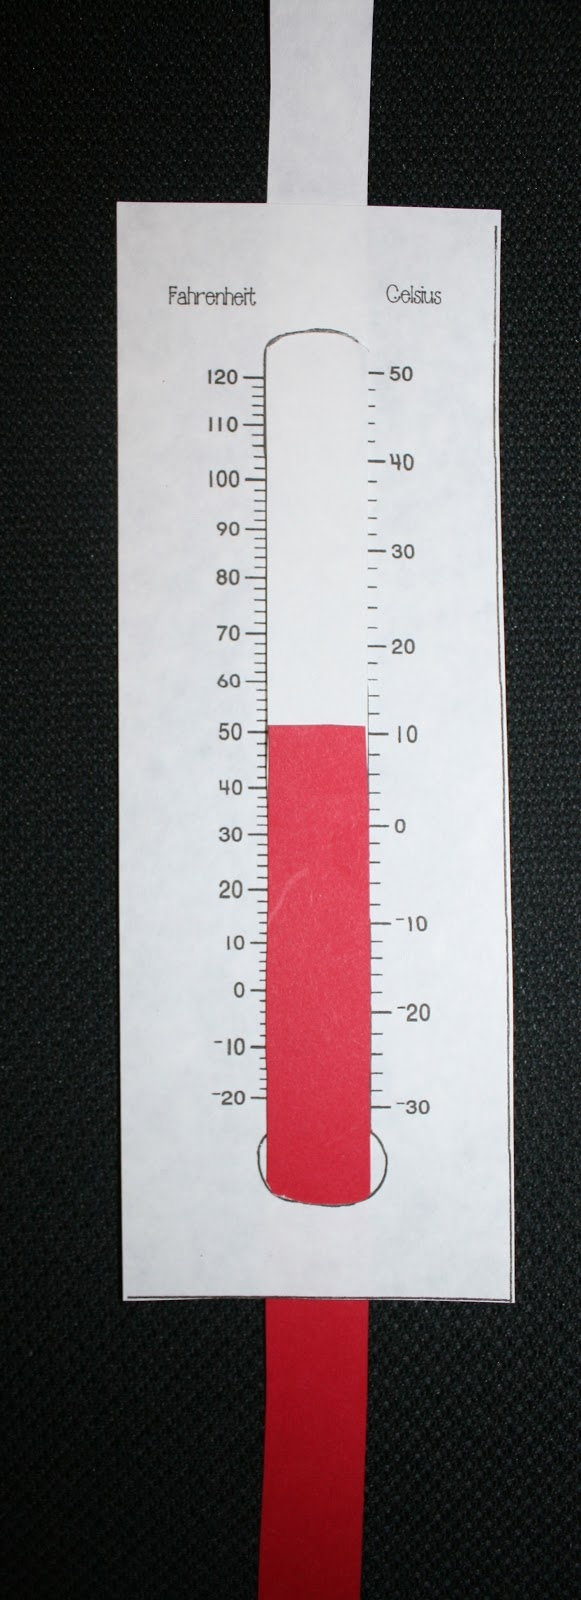 alla scoperta dei gradi Celius e Fahrenheit -  Classroom Freebies: Thermometer Activities